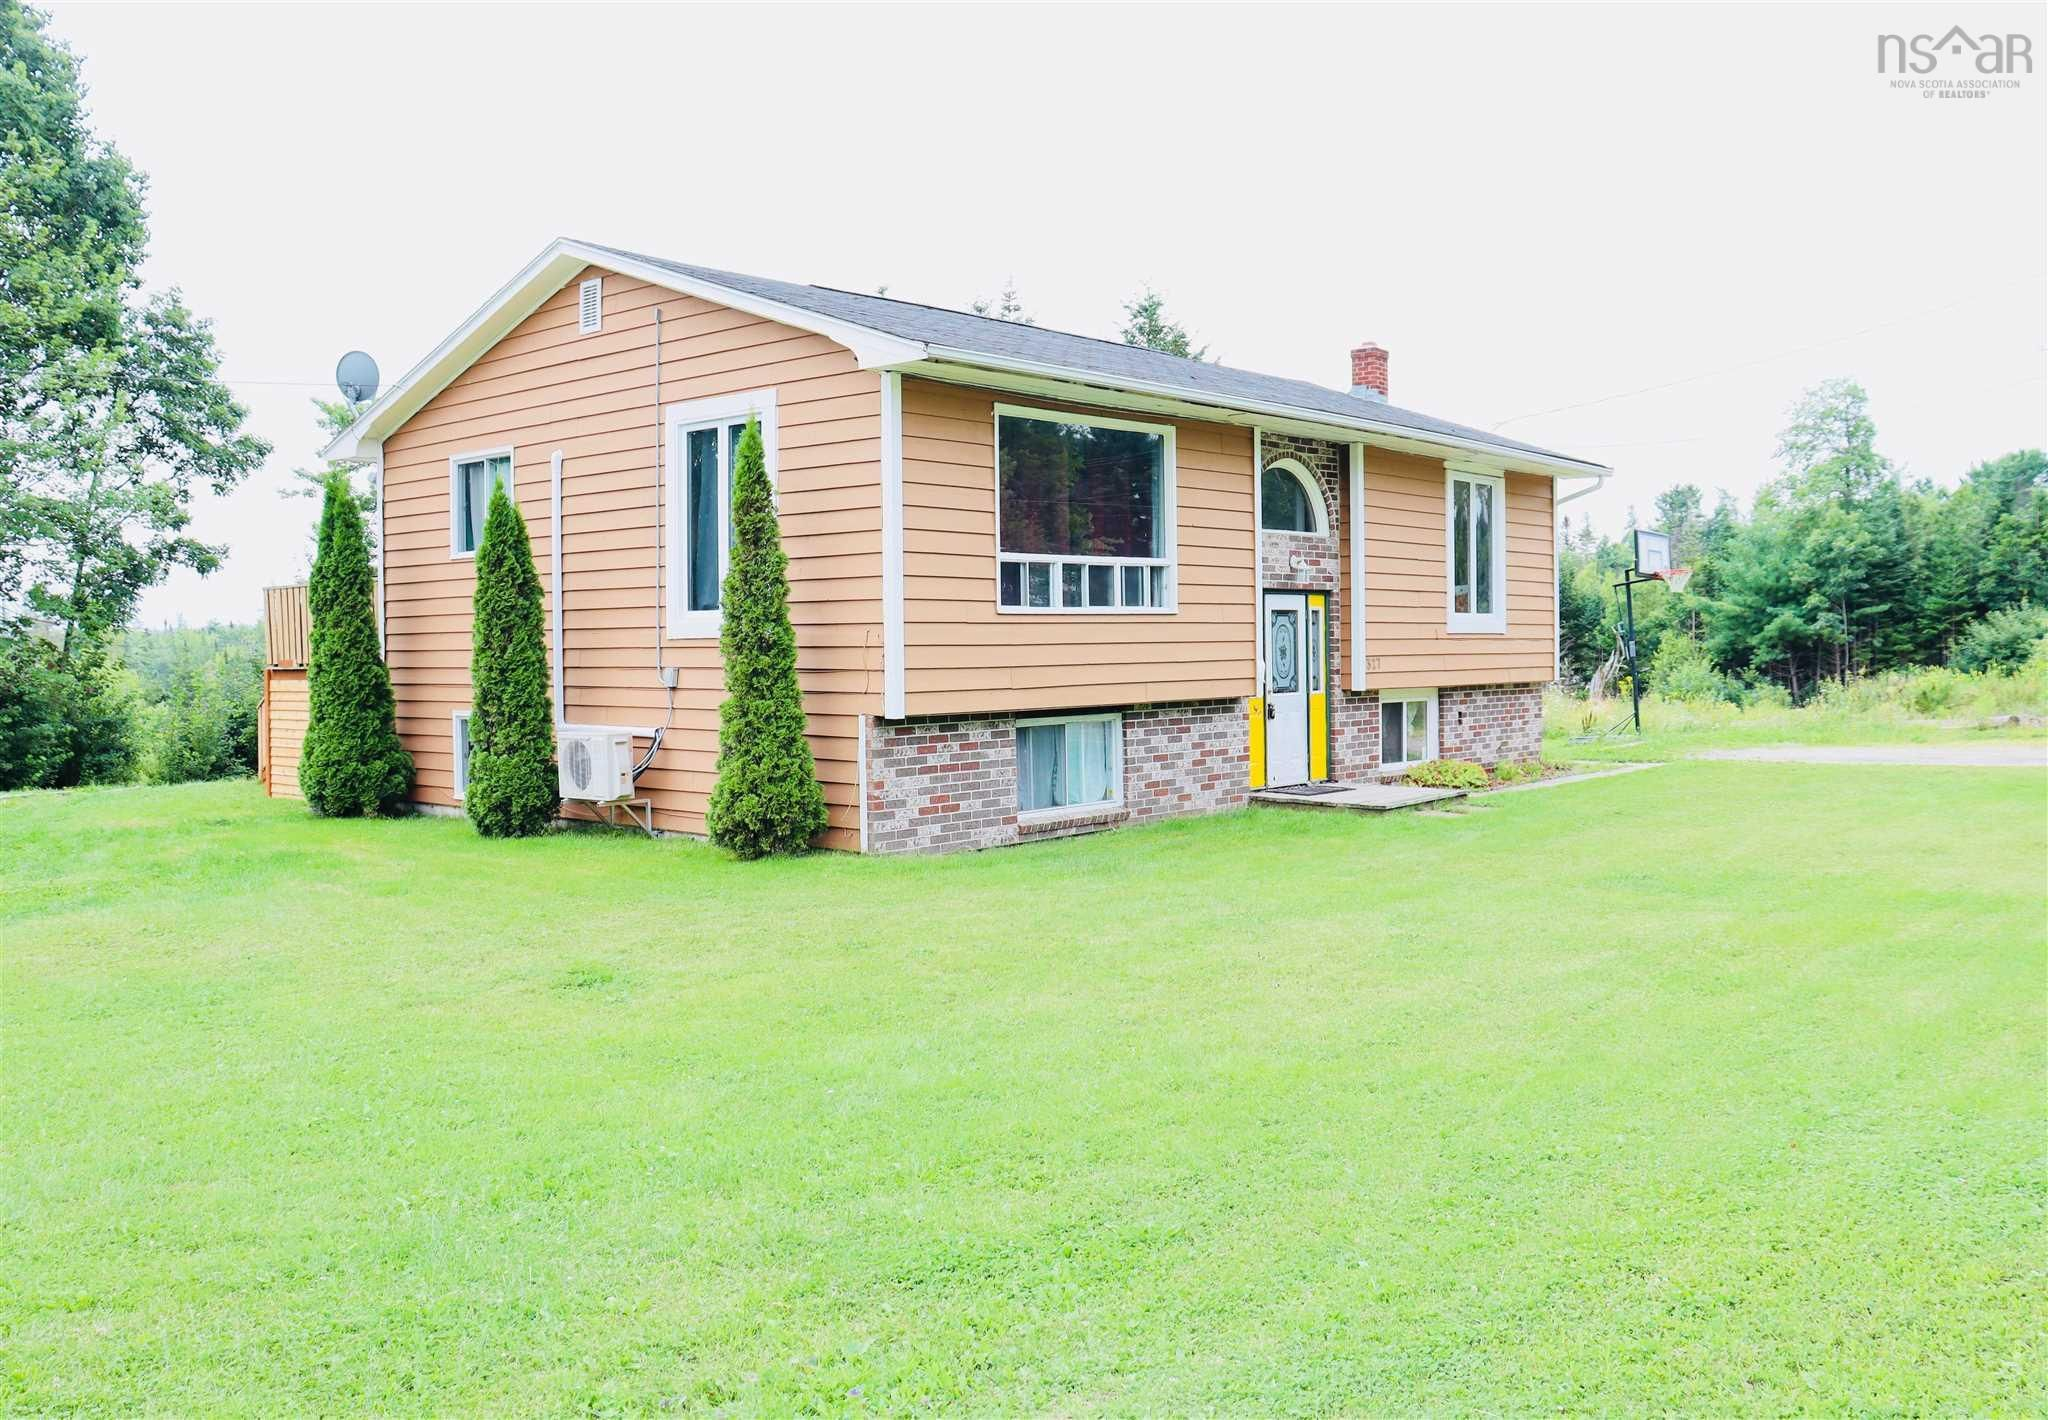 Photo 1: Photos: 327 Highway 3 in Simms Settlement: 405-Lunenburg County Residential for sale (South Shore)  : MLS®# 202120797